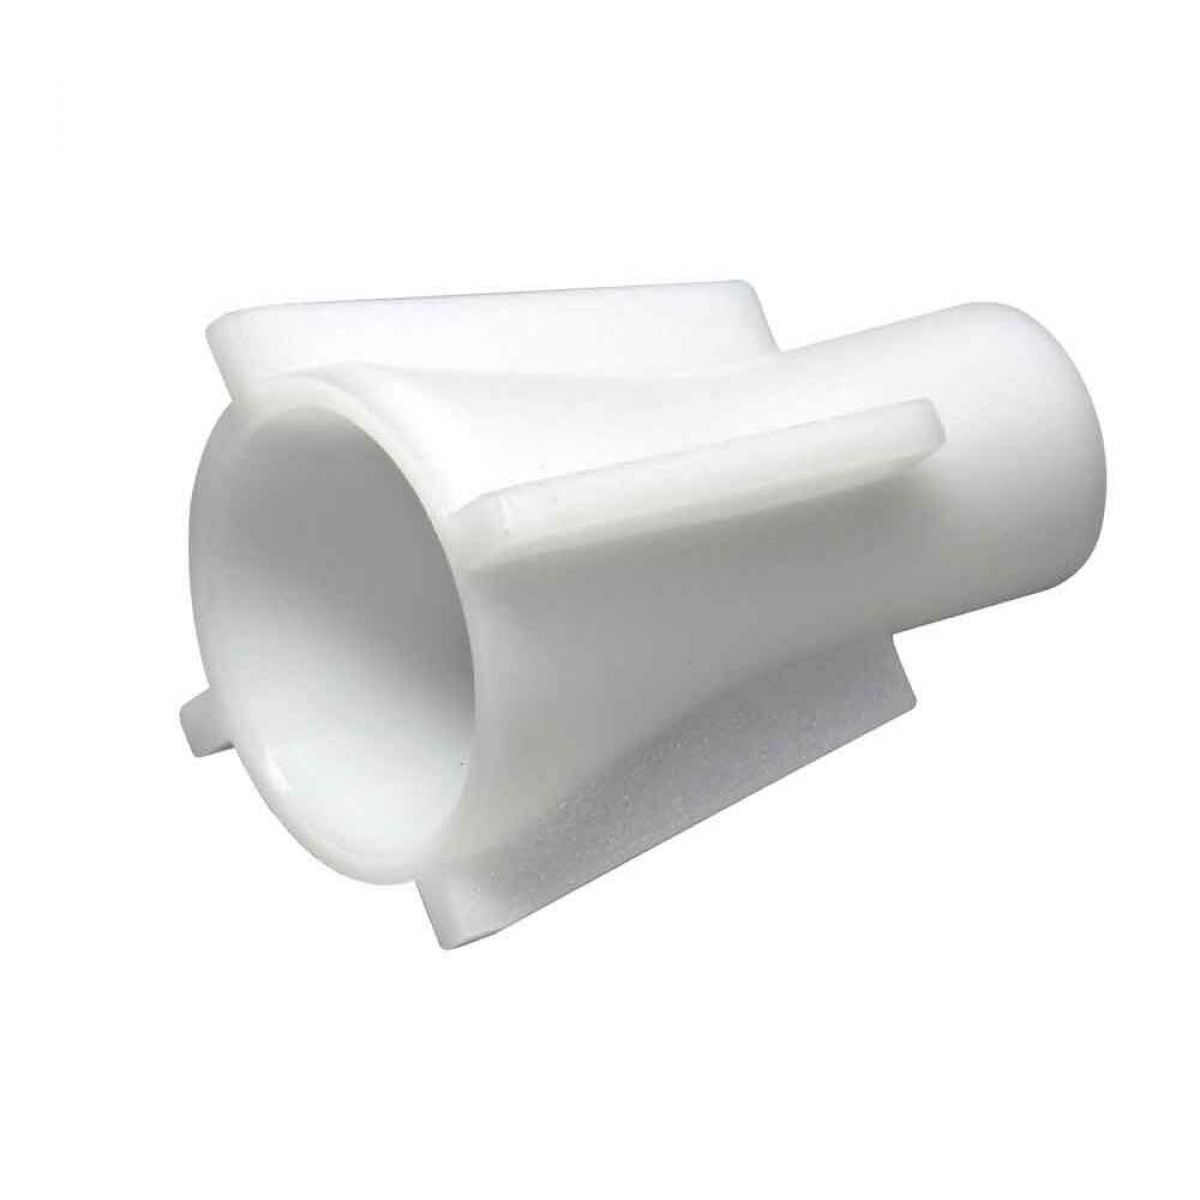 (3) Inner Nozzle (White) for Rotador Adaptor Z-0300